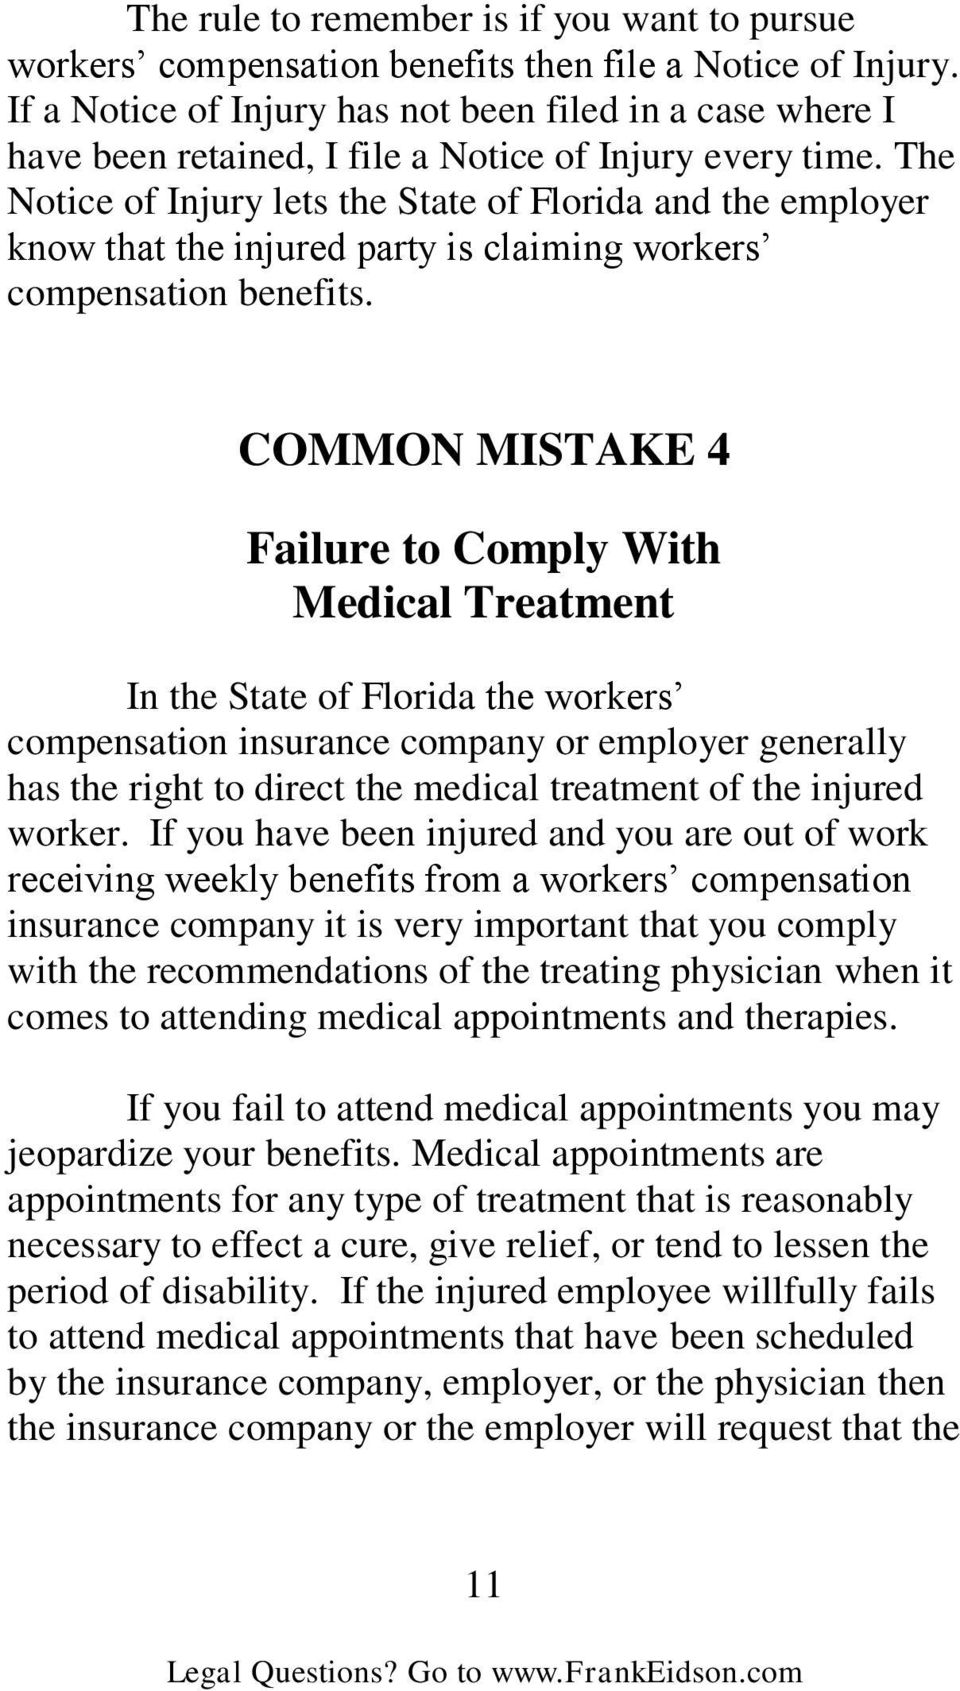 The Notice of Injury lets the State of Florida and the employer know that the injured party is claiming workers compensation benefits.